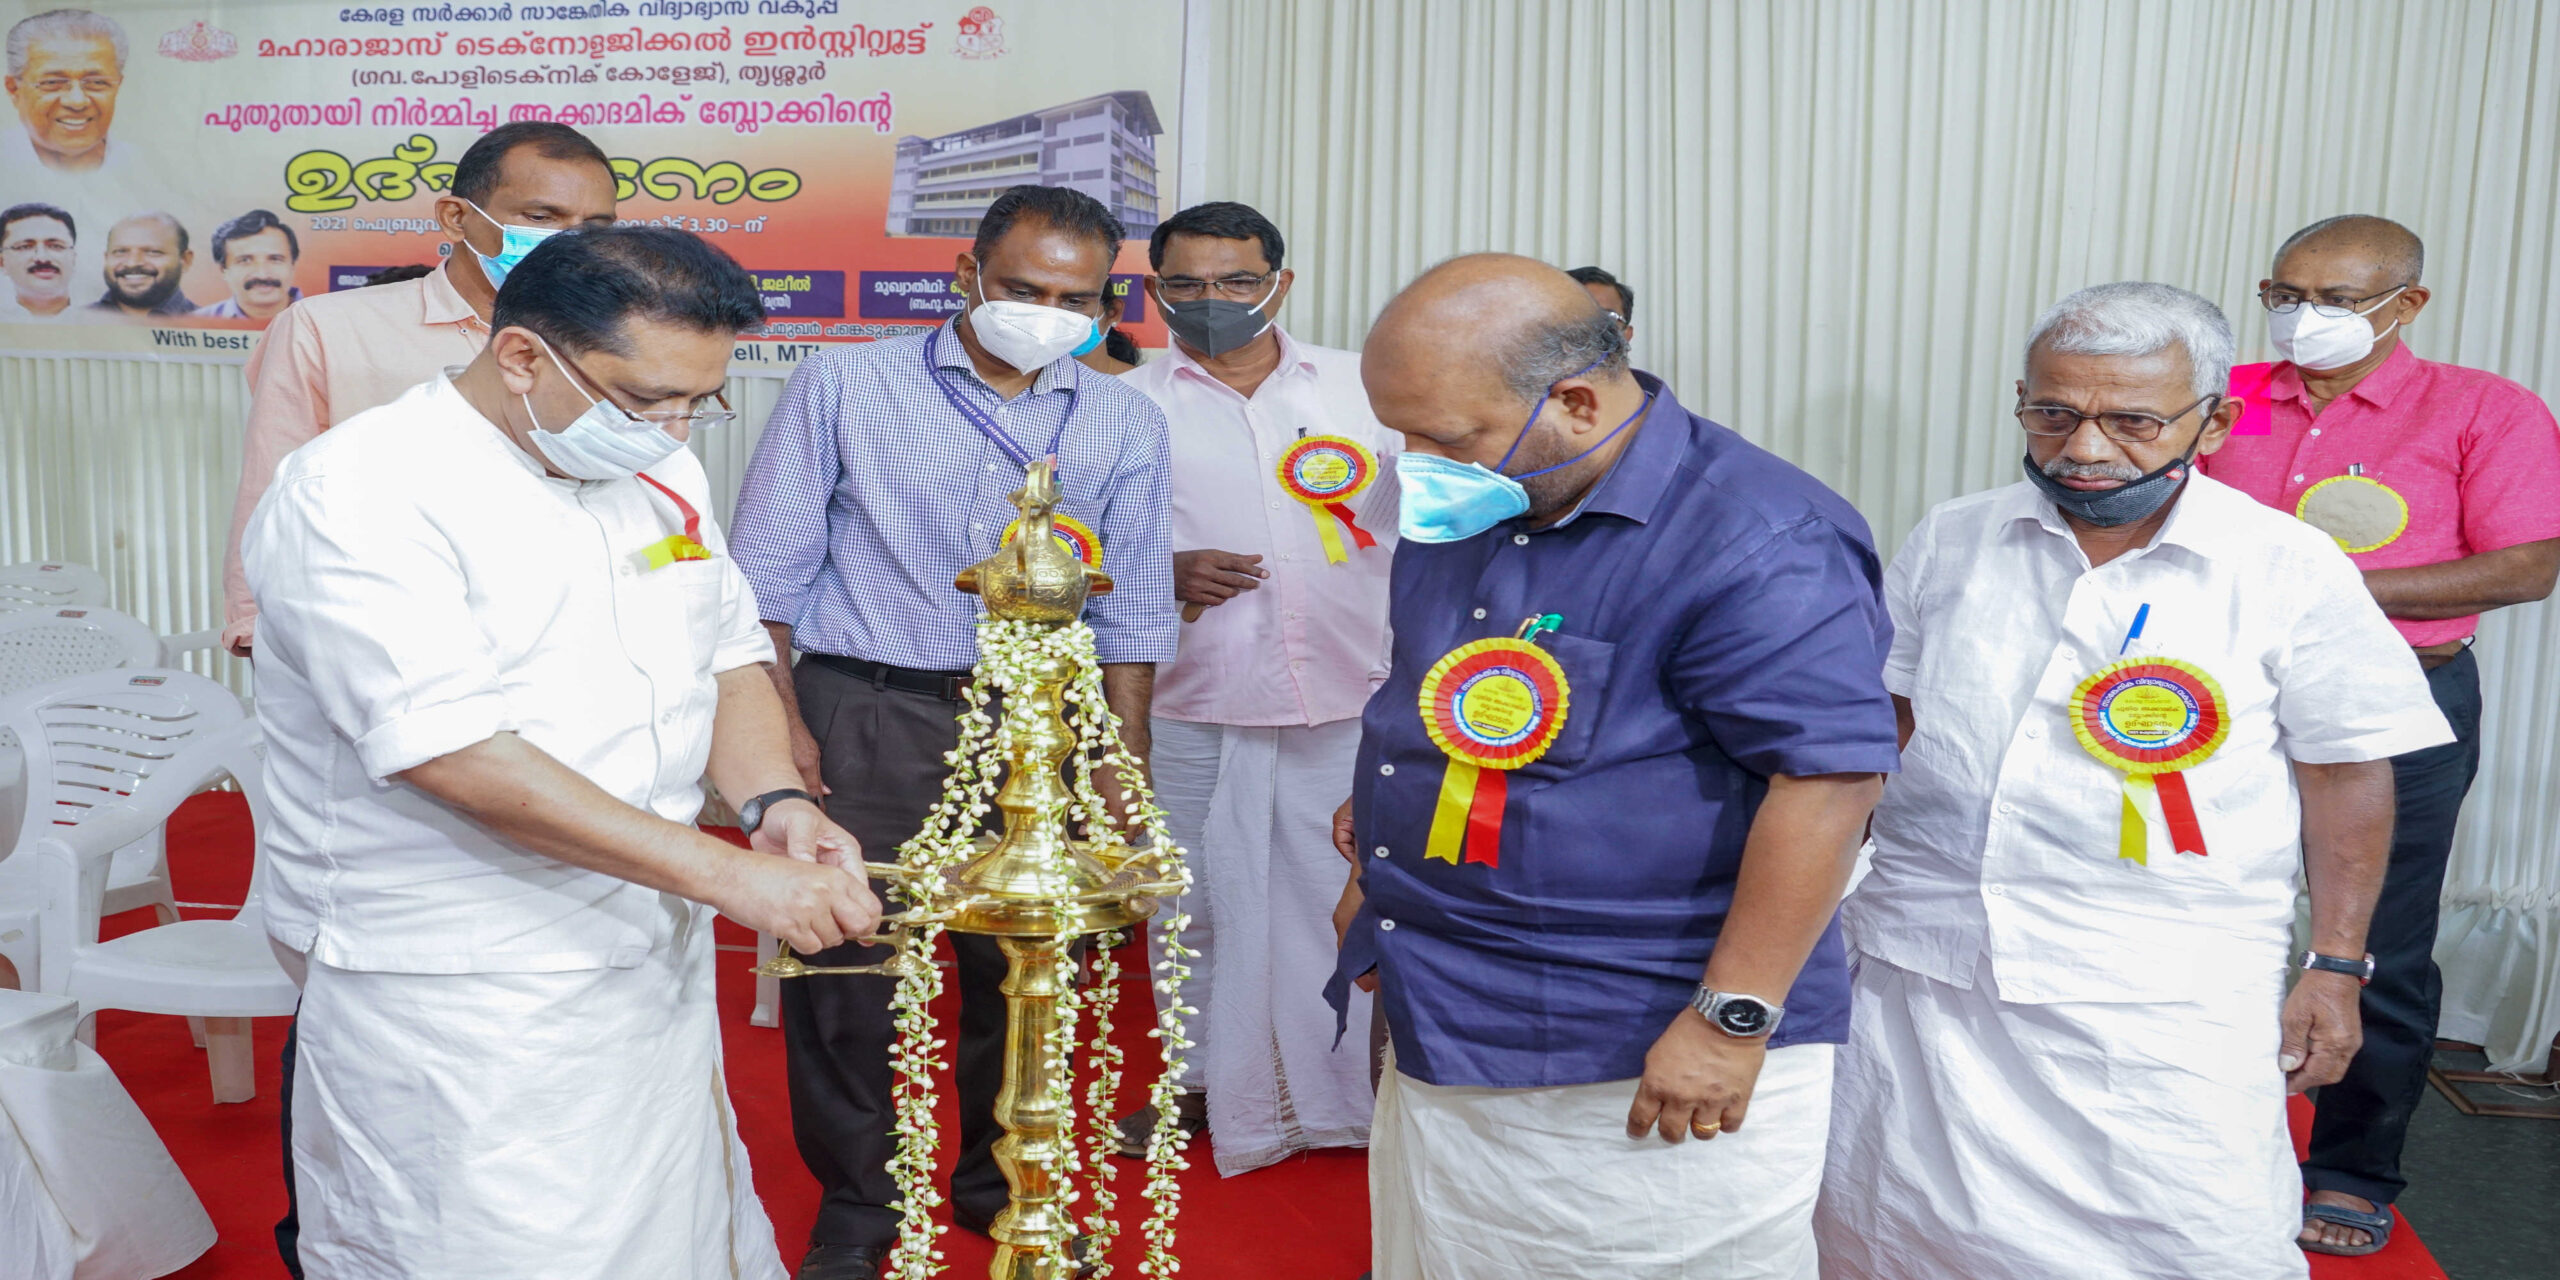 Inauguration of new building